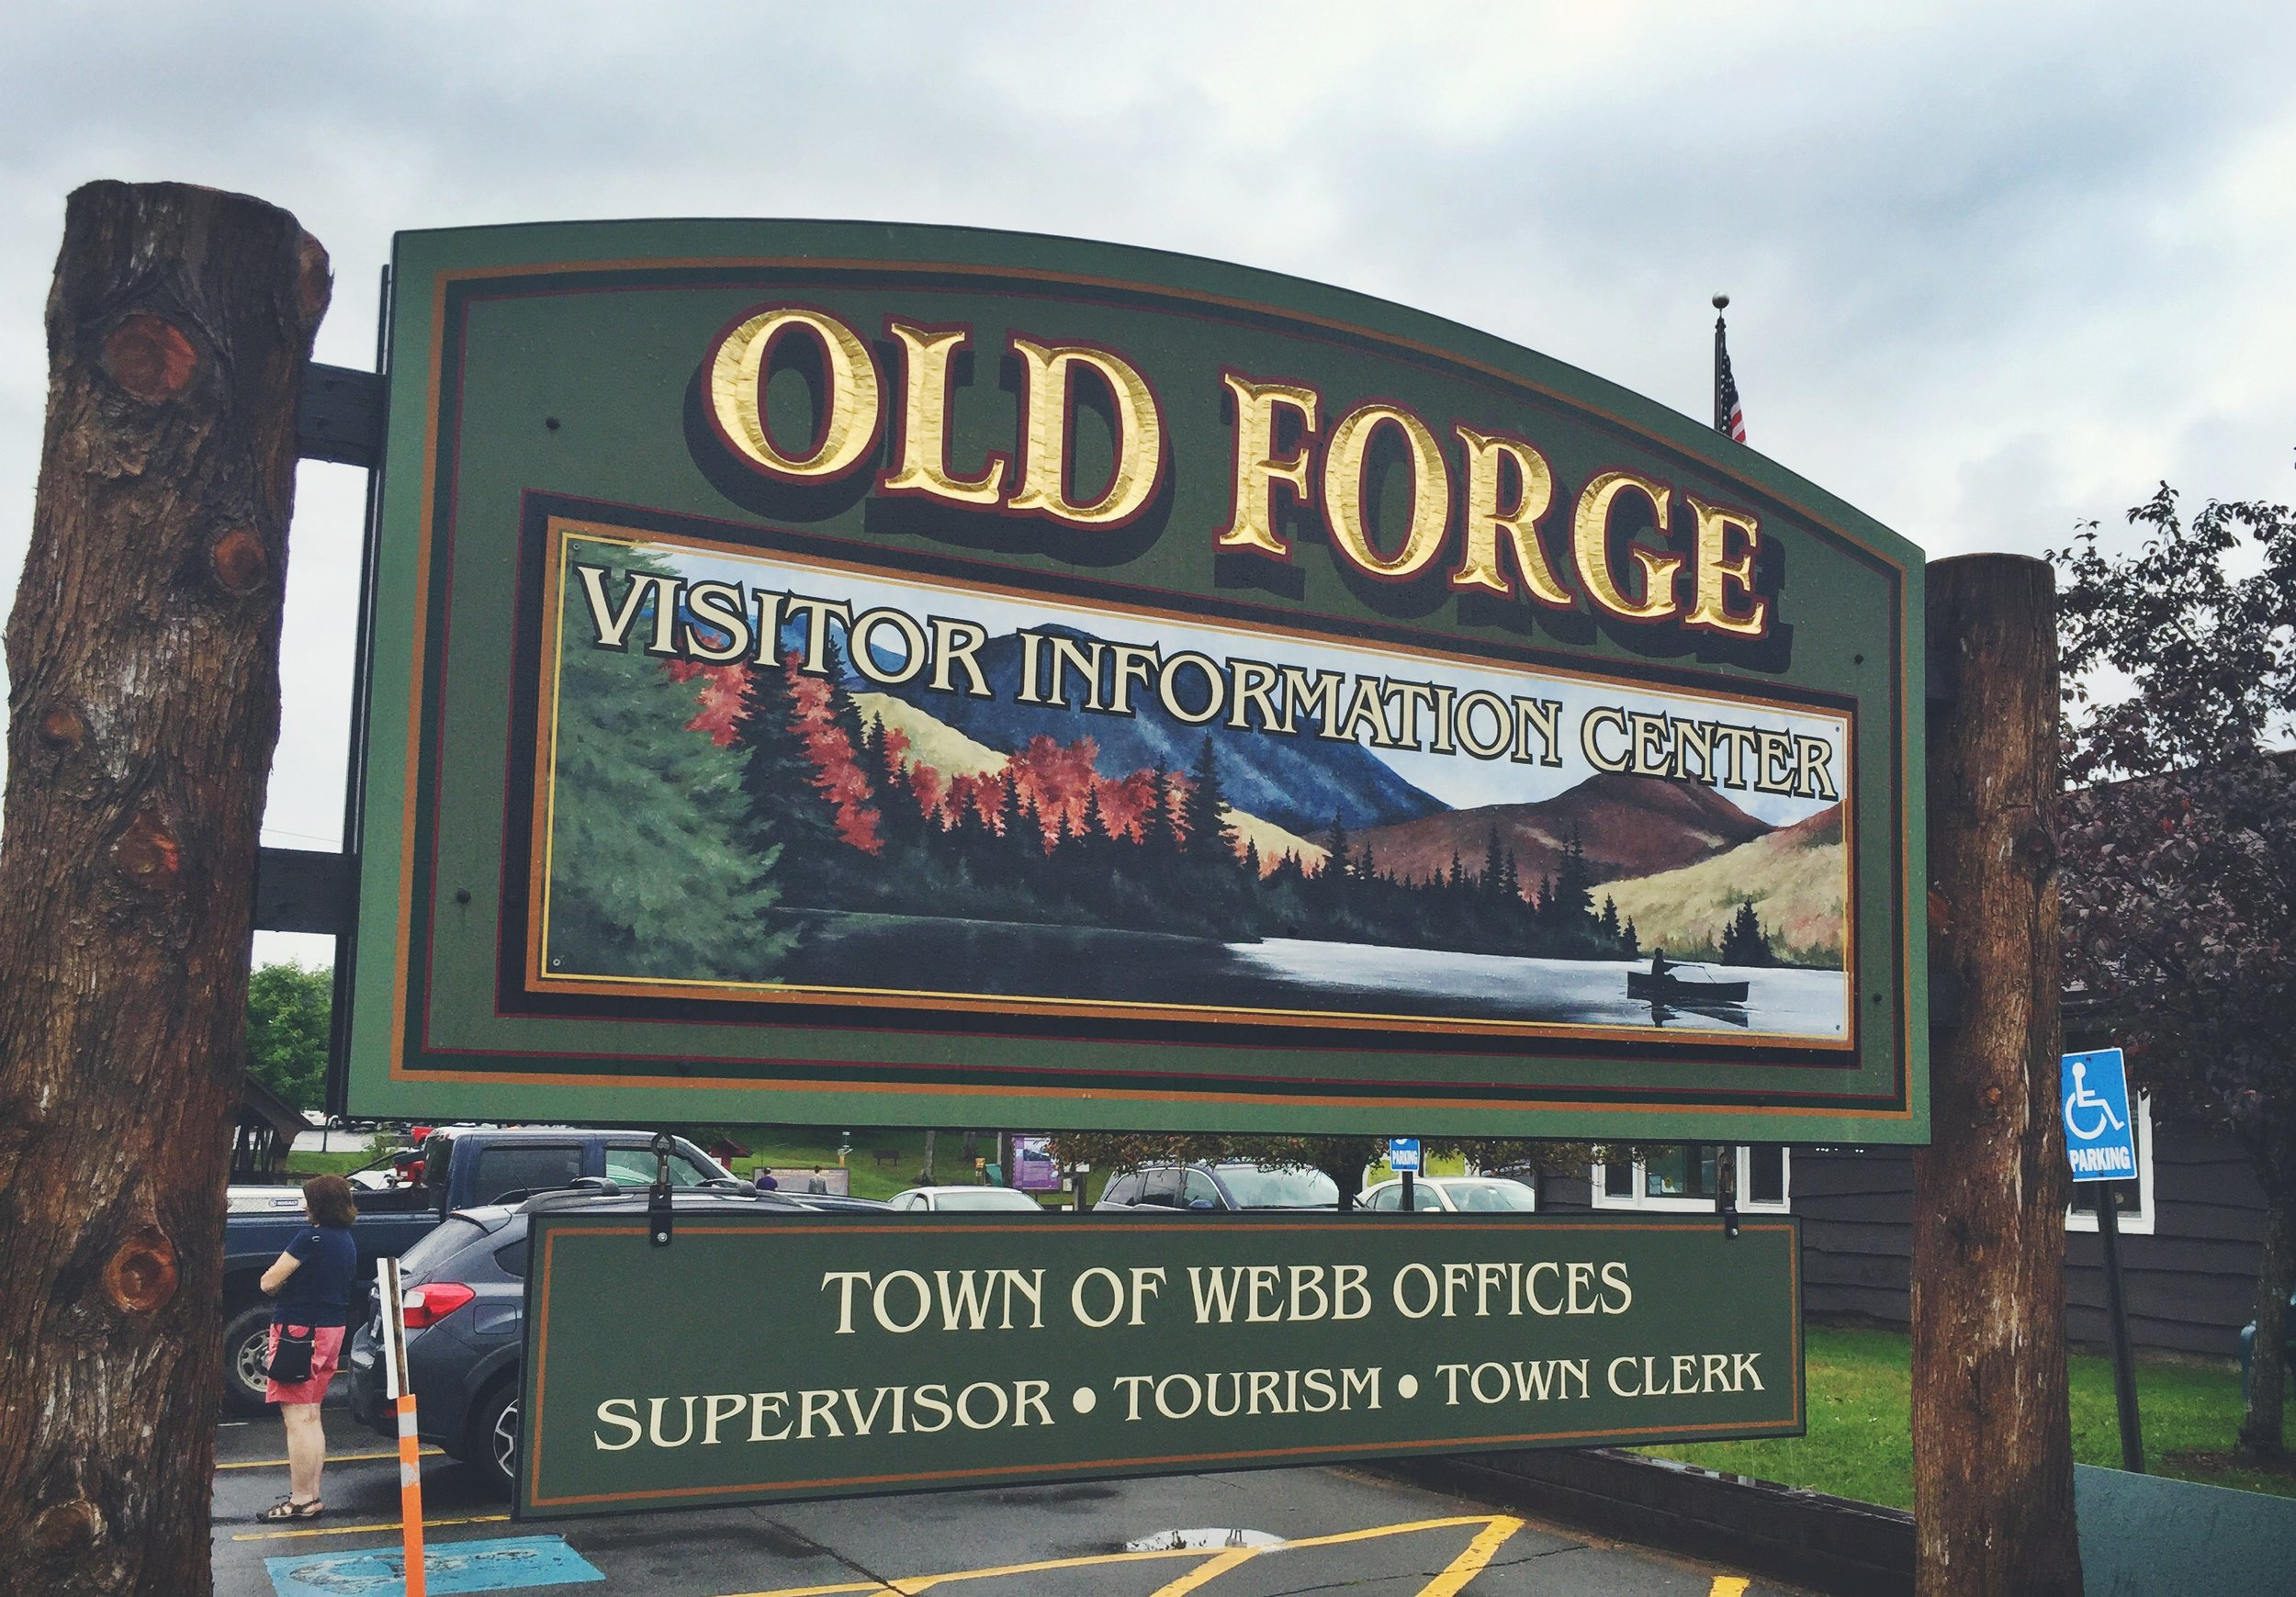 Old Forge New York marks the western terminus of the Northern Forest Canoe Trail.